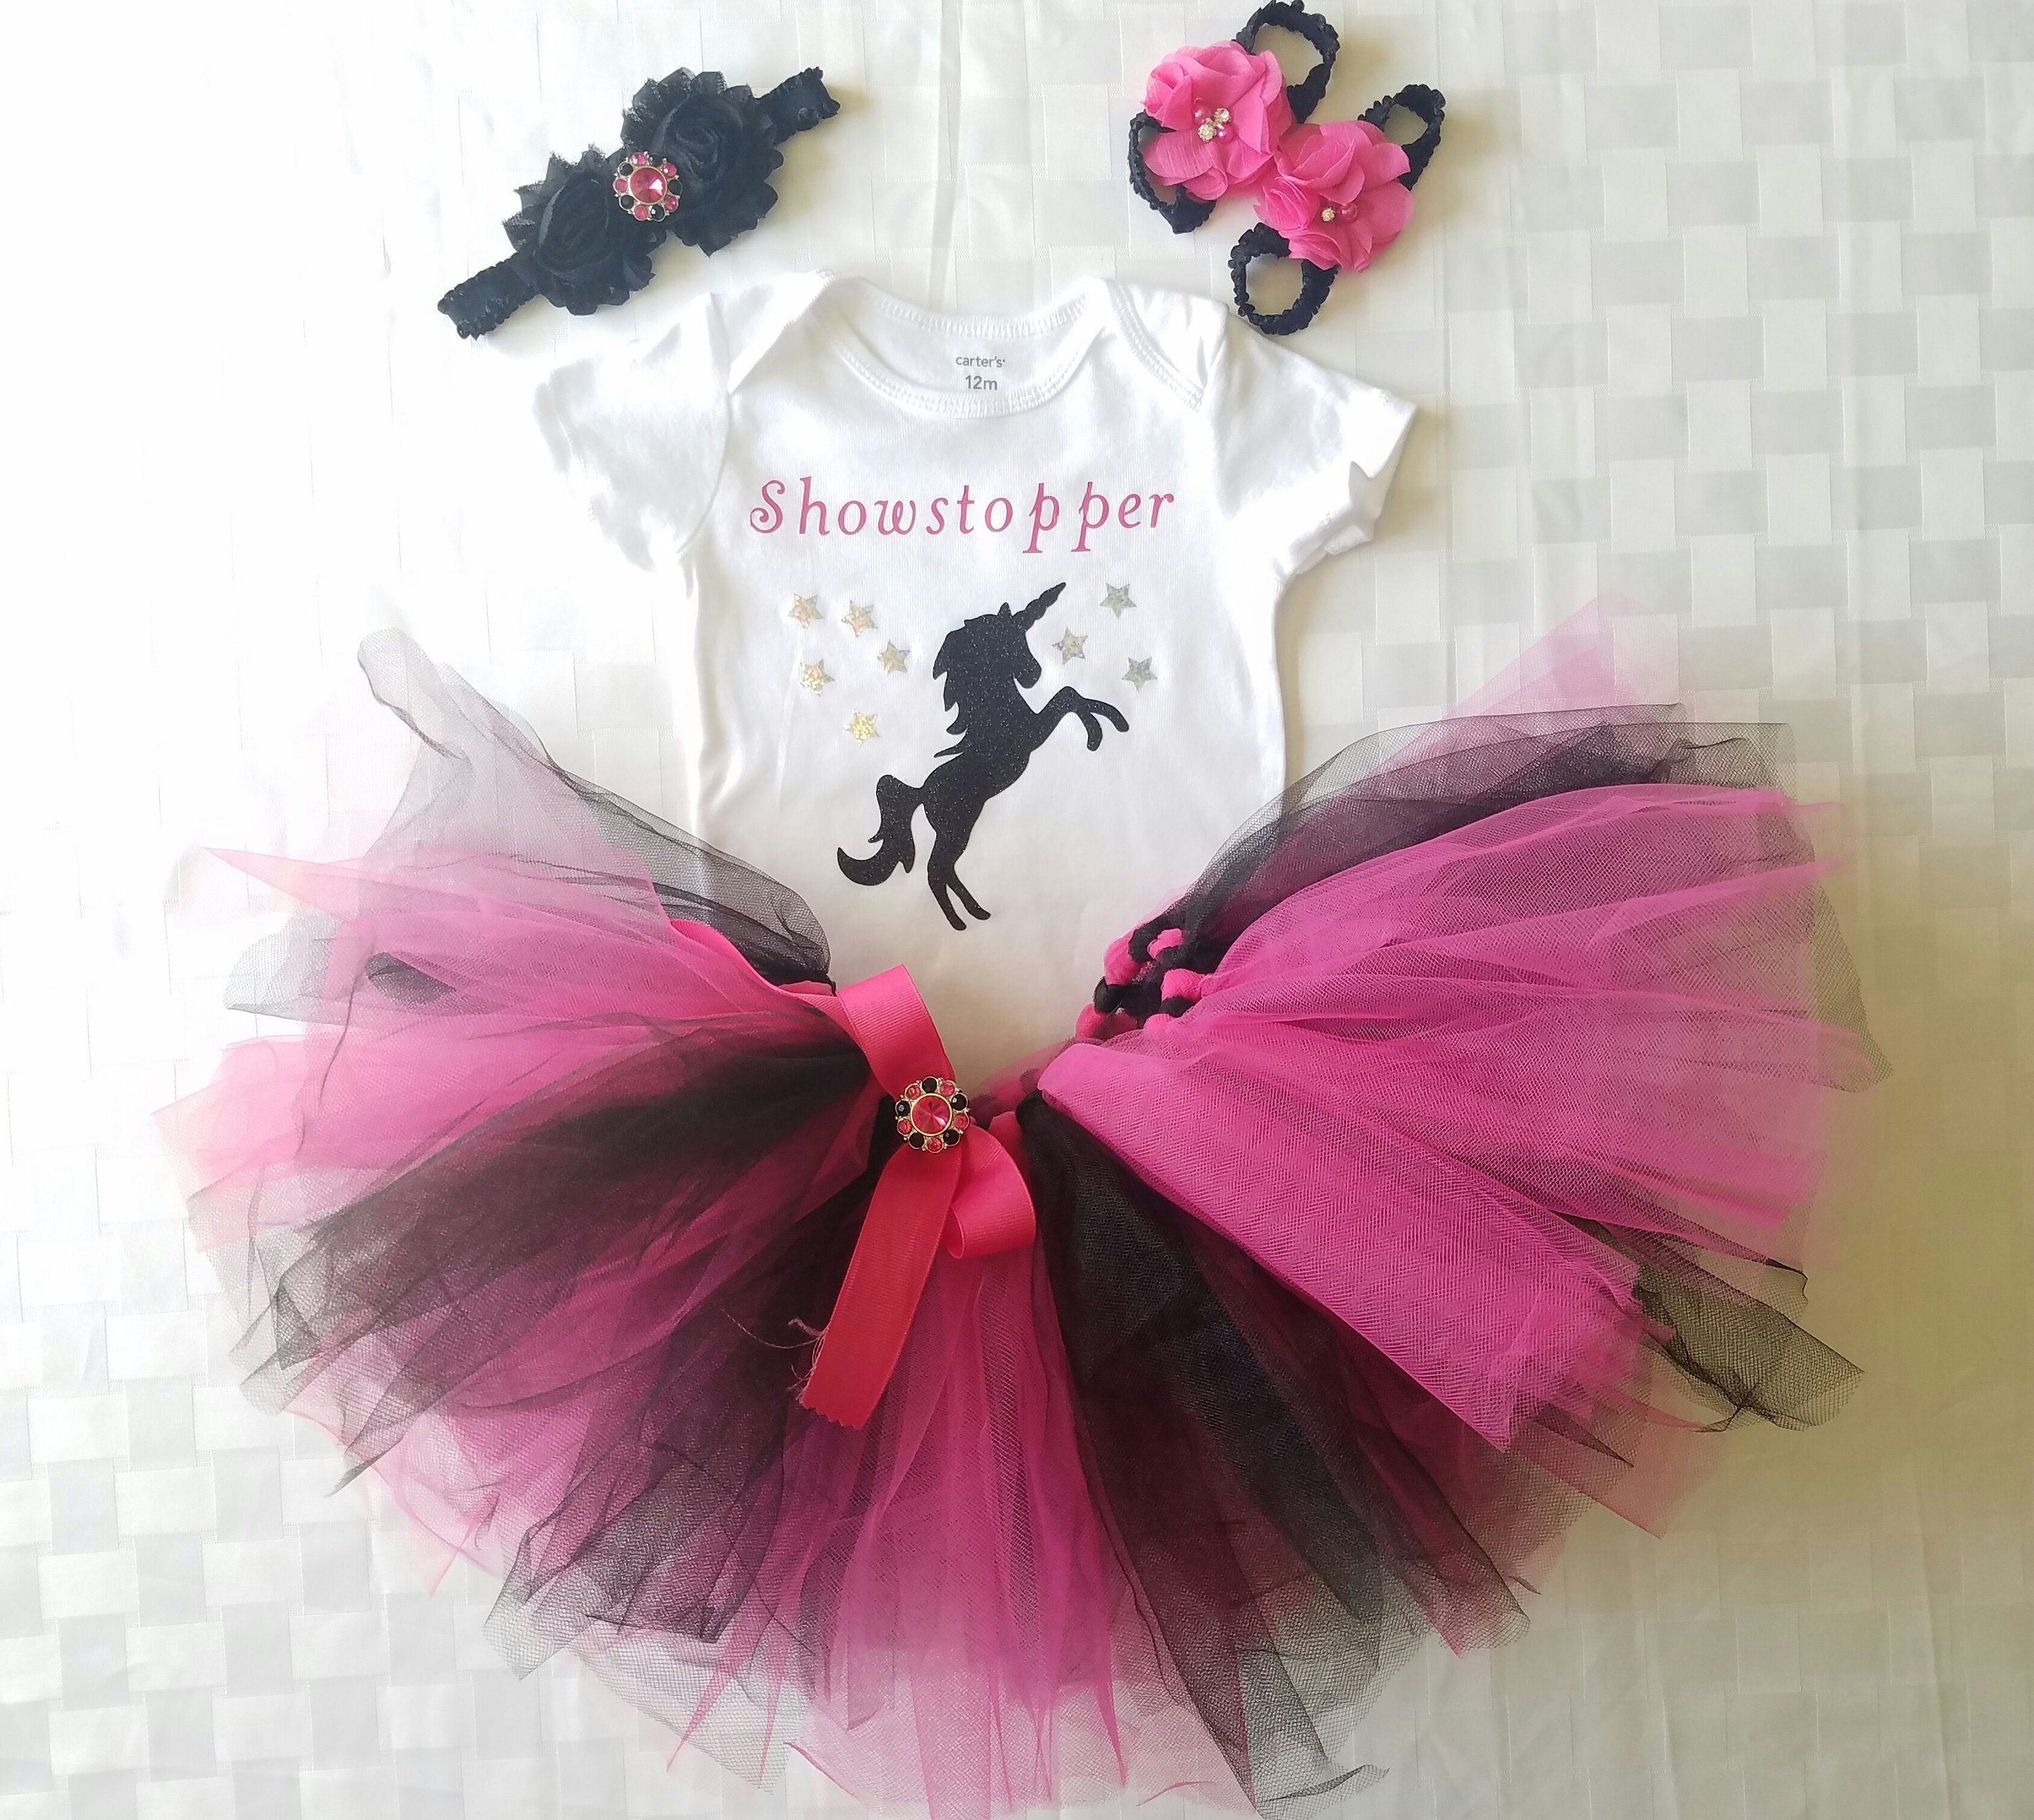 146f389f4b666 Showstopper Unicorn Tutu Outfit (Sizes Preemie - 24 Months) by  BetsysItsyEtsy on Etsy